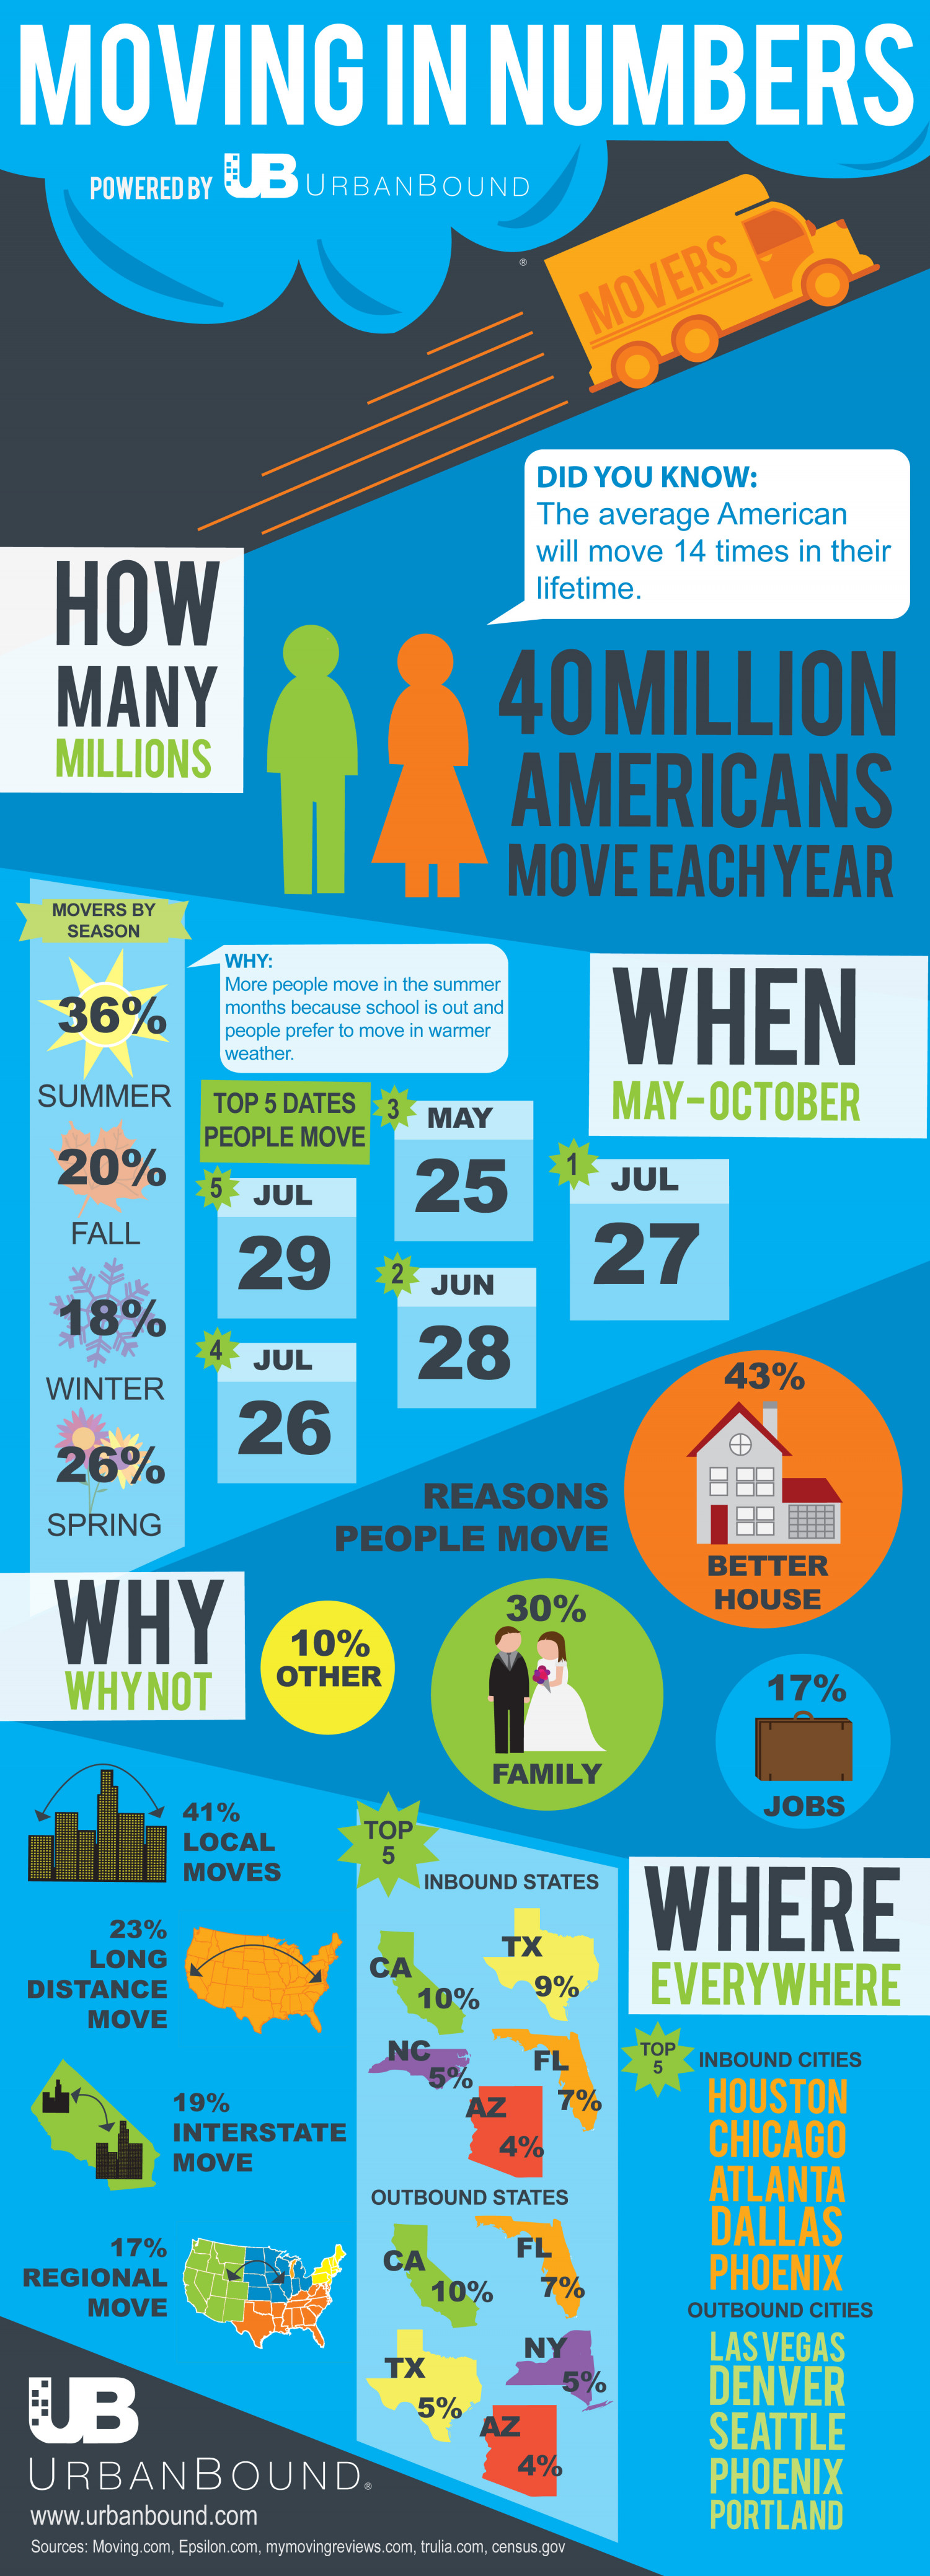 Moving in Numbers Infographic